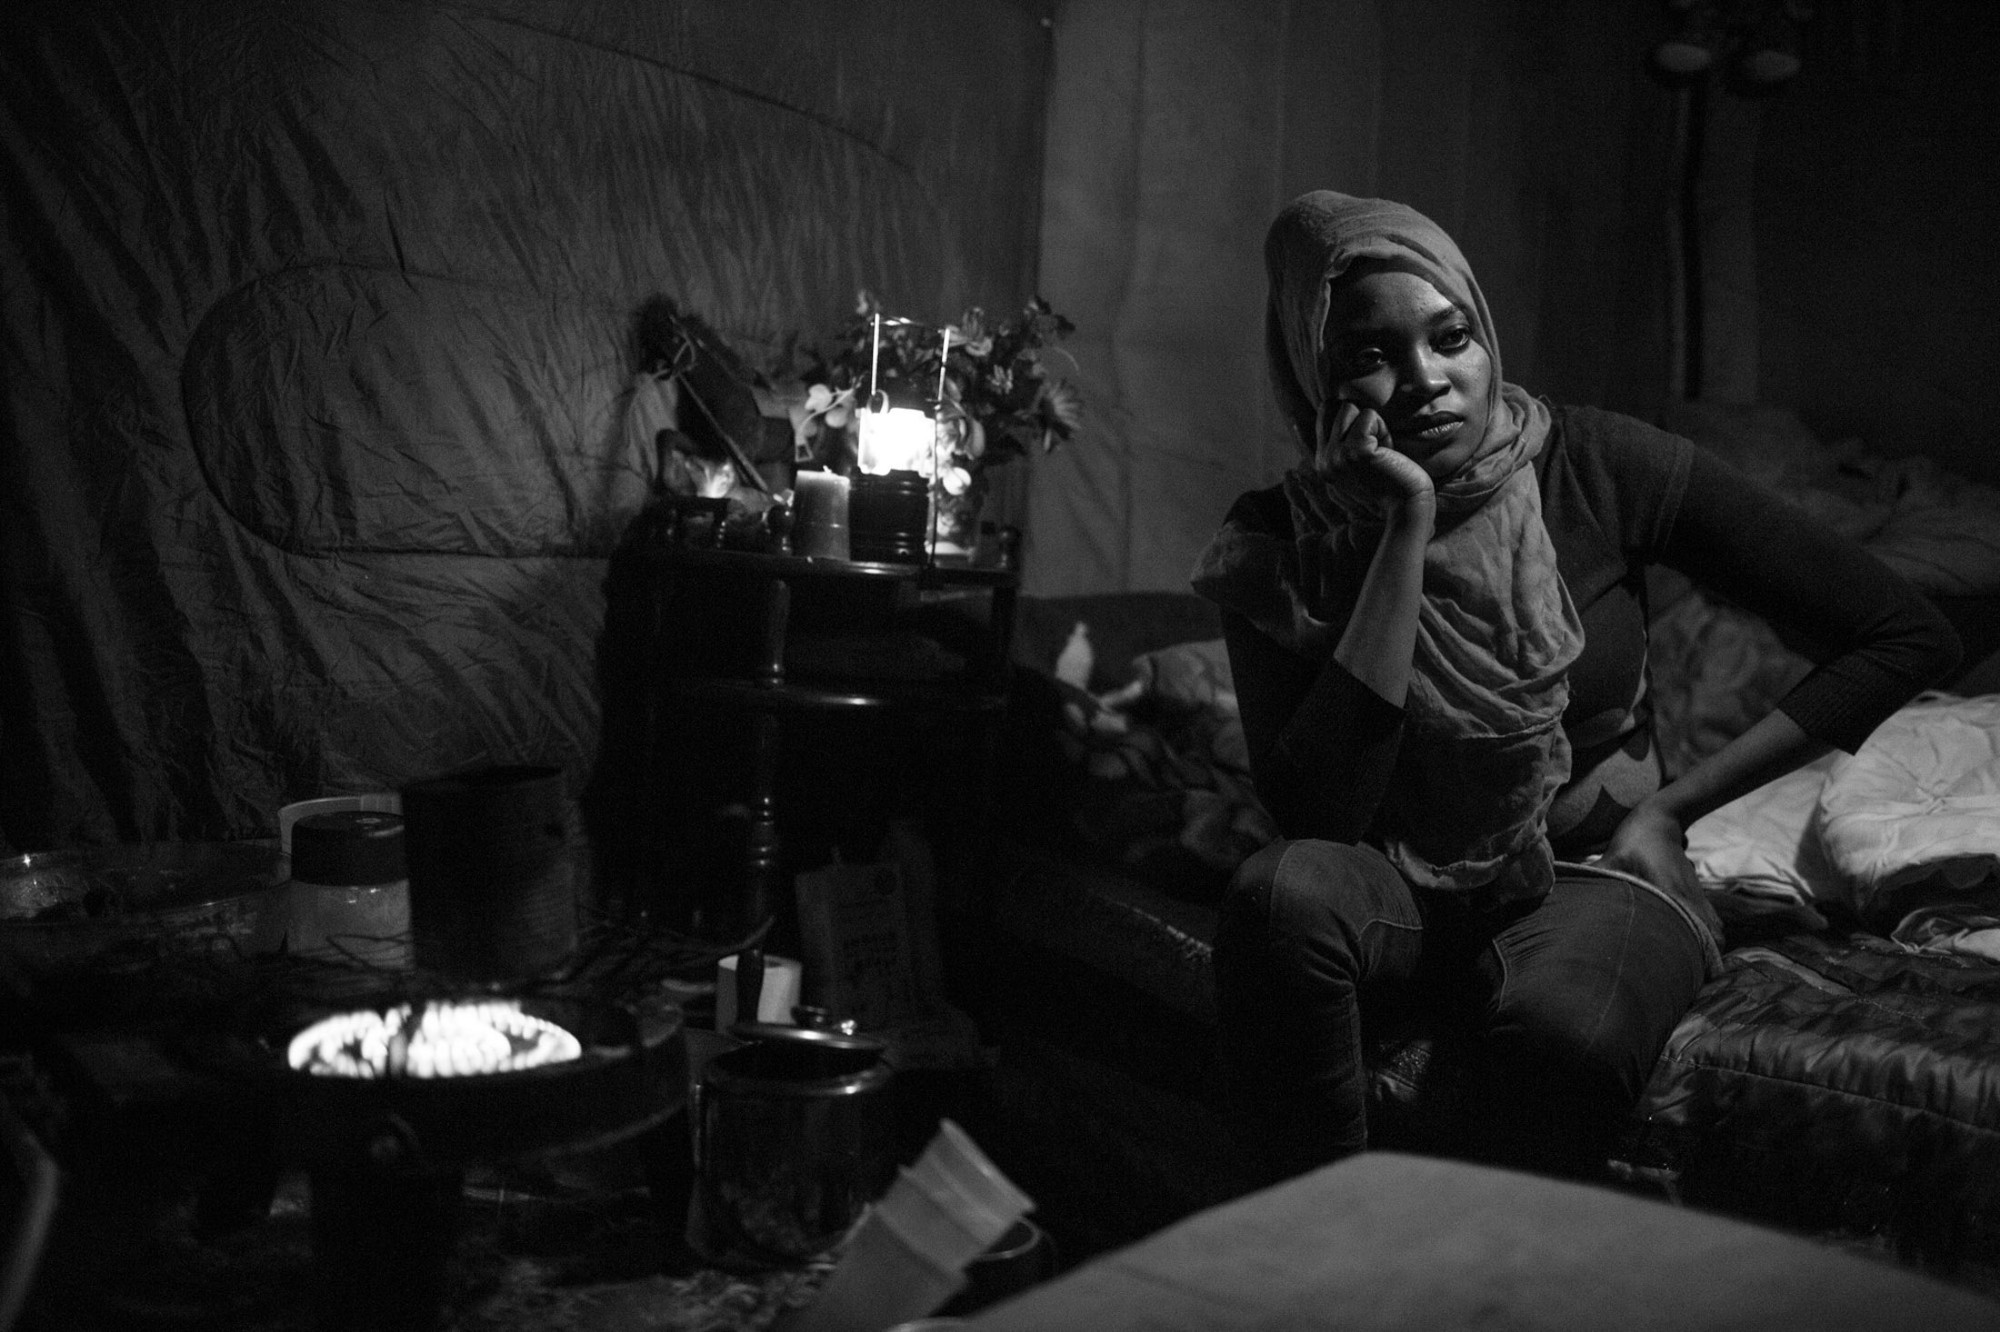 Luna in a reflective mood between cooking meals on a portable propane gas ring and caring for her daughter Euro in a shack insulated by donated sleeping bags, which was built by her husband Hosni. She is one of the many women in the Jungle seeking refuge.